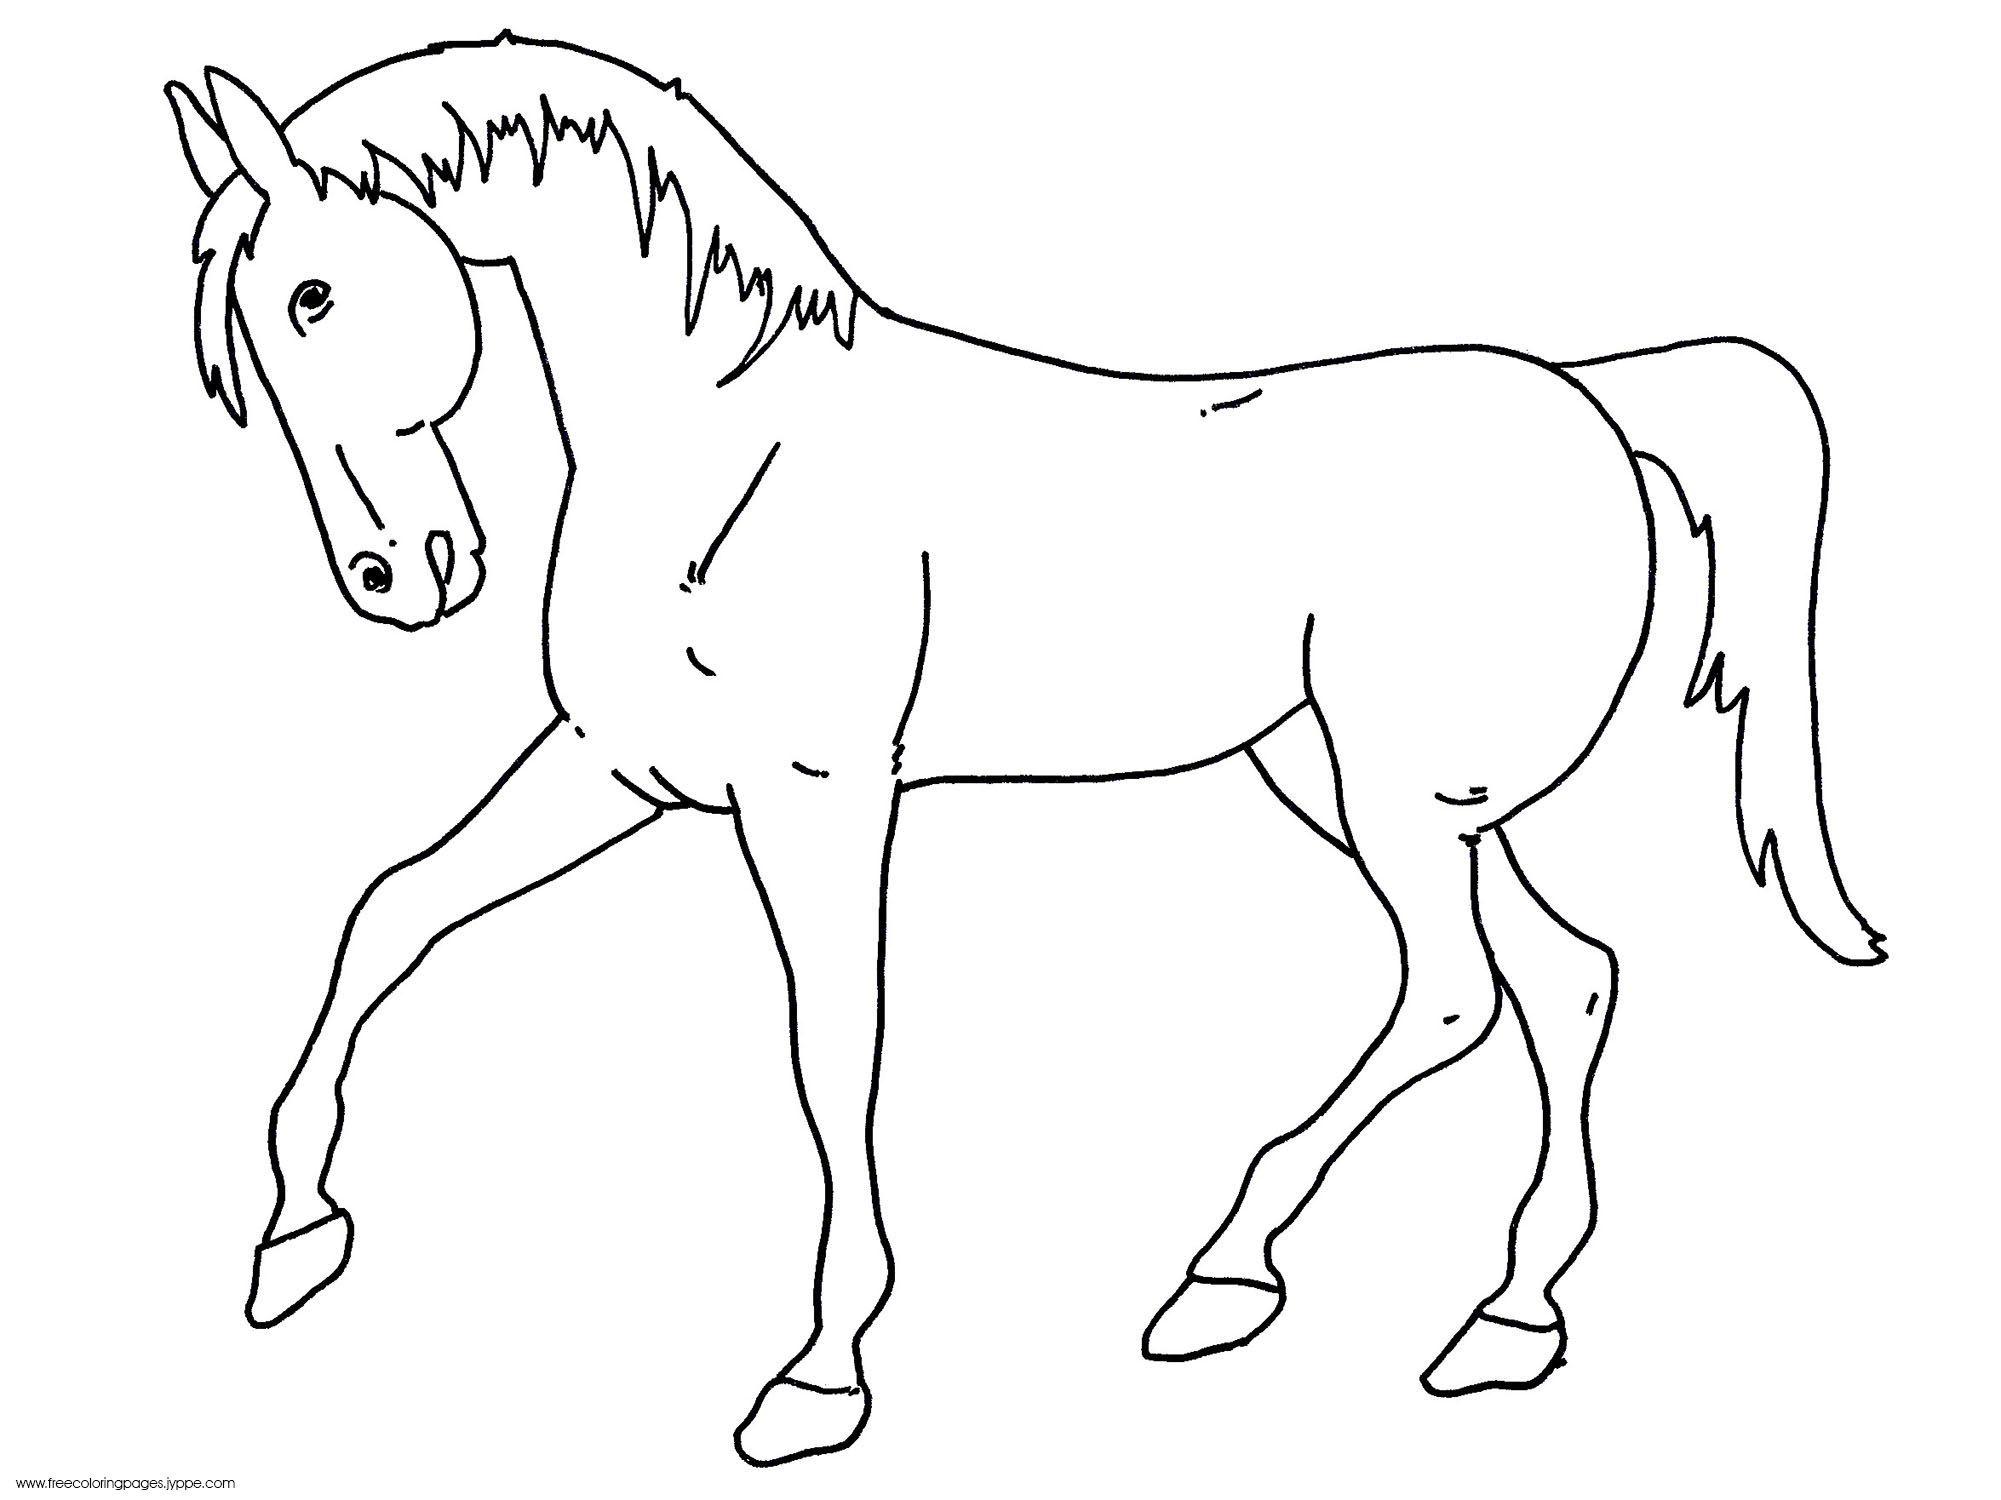 Horse Coloring Shets Free Printable Horse Outline To Color Free